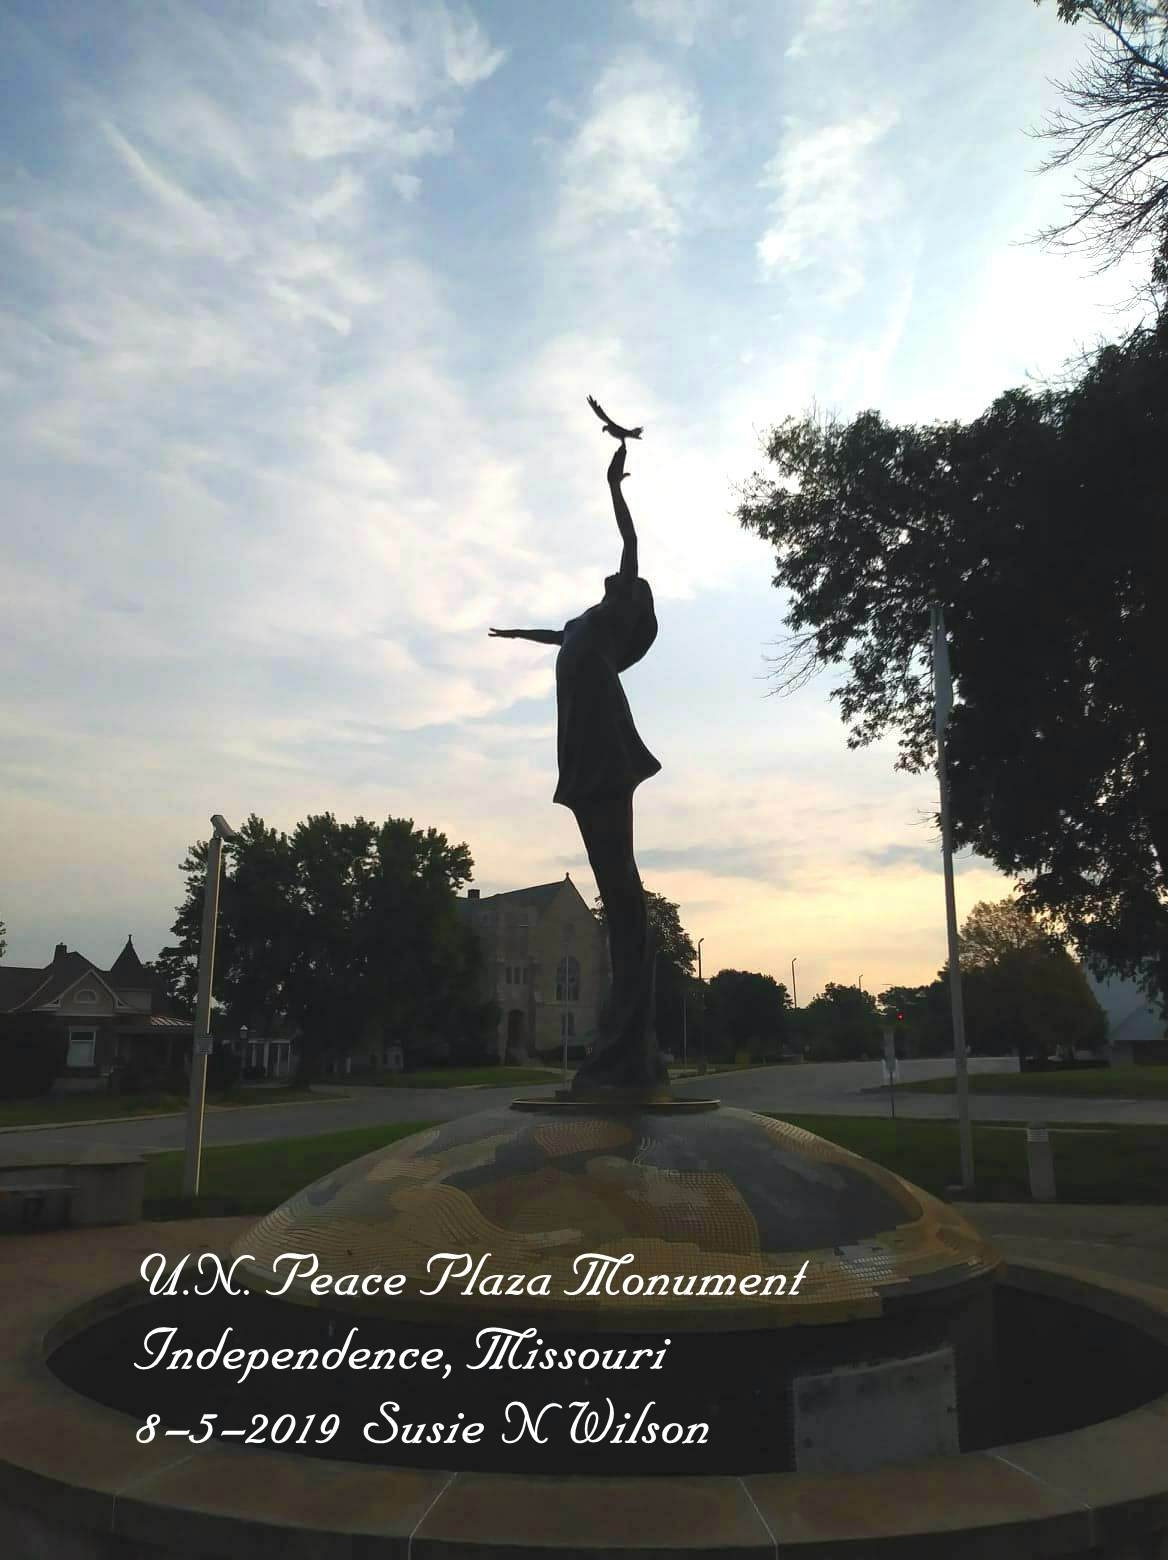 U.N. Peace Plaza Monument in Independence, Missouri